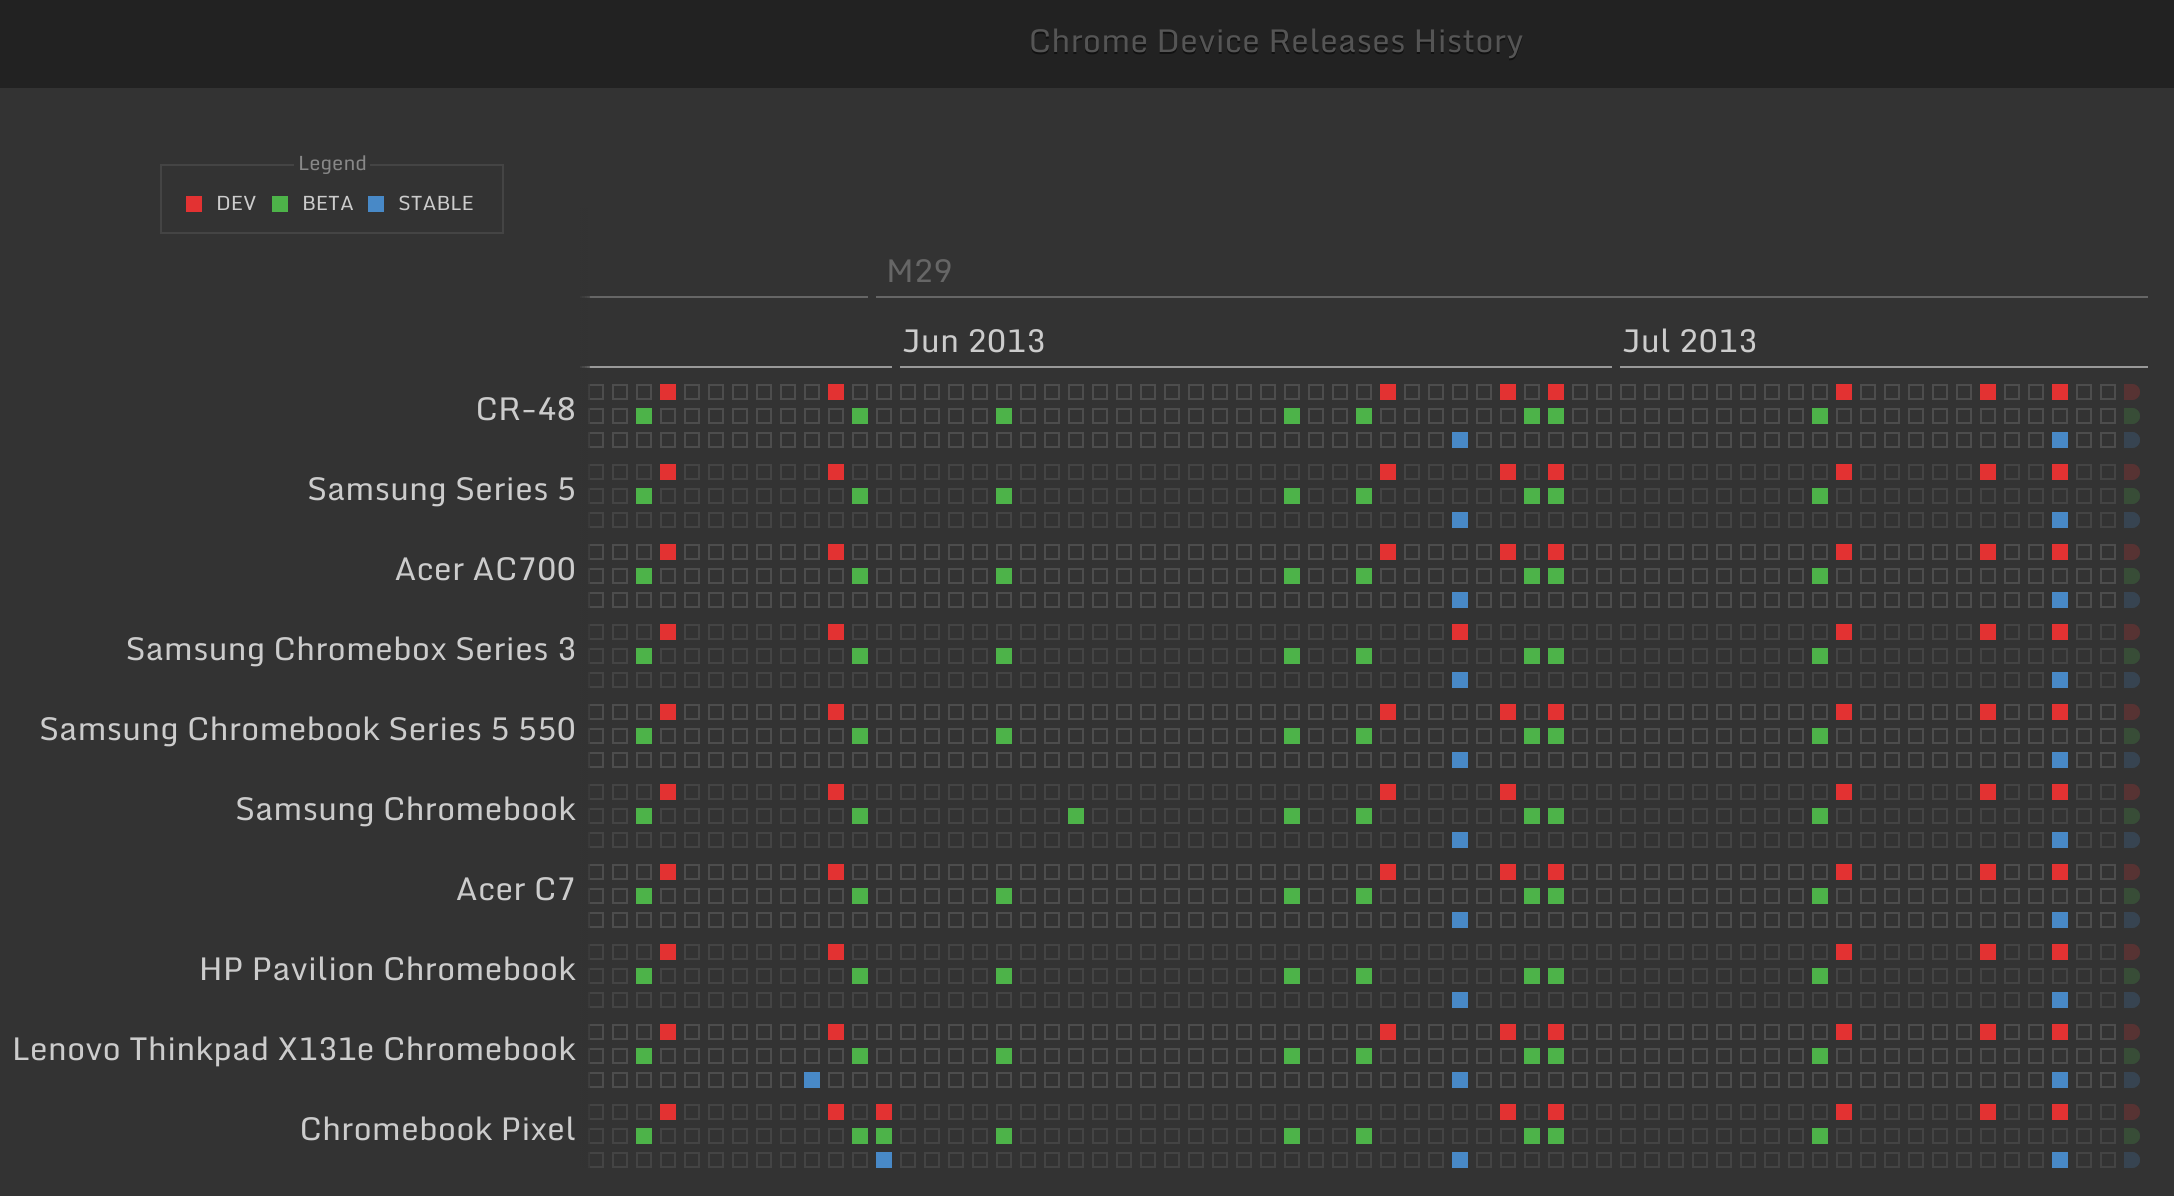 Historical view of ChromeOS releases by device